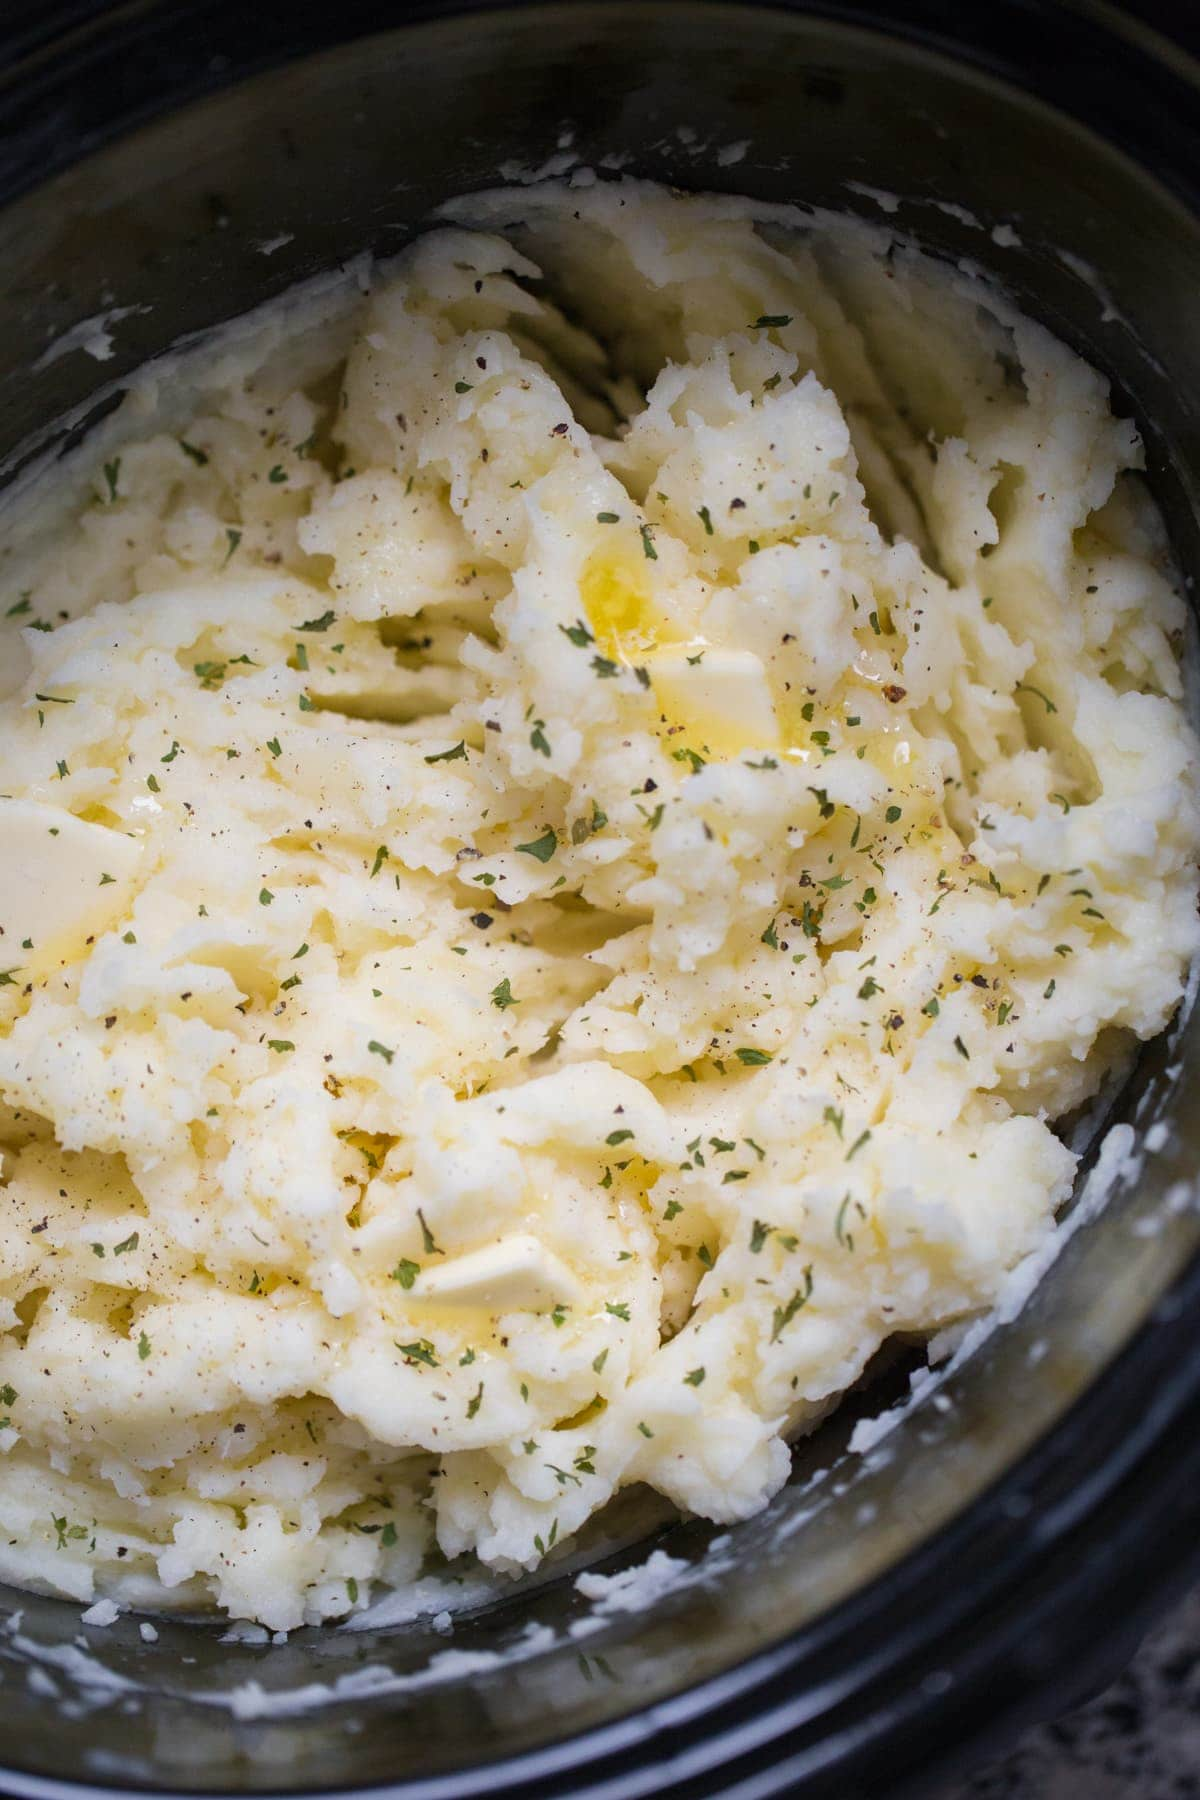 Mashed potatoes made in the crockpot